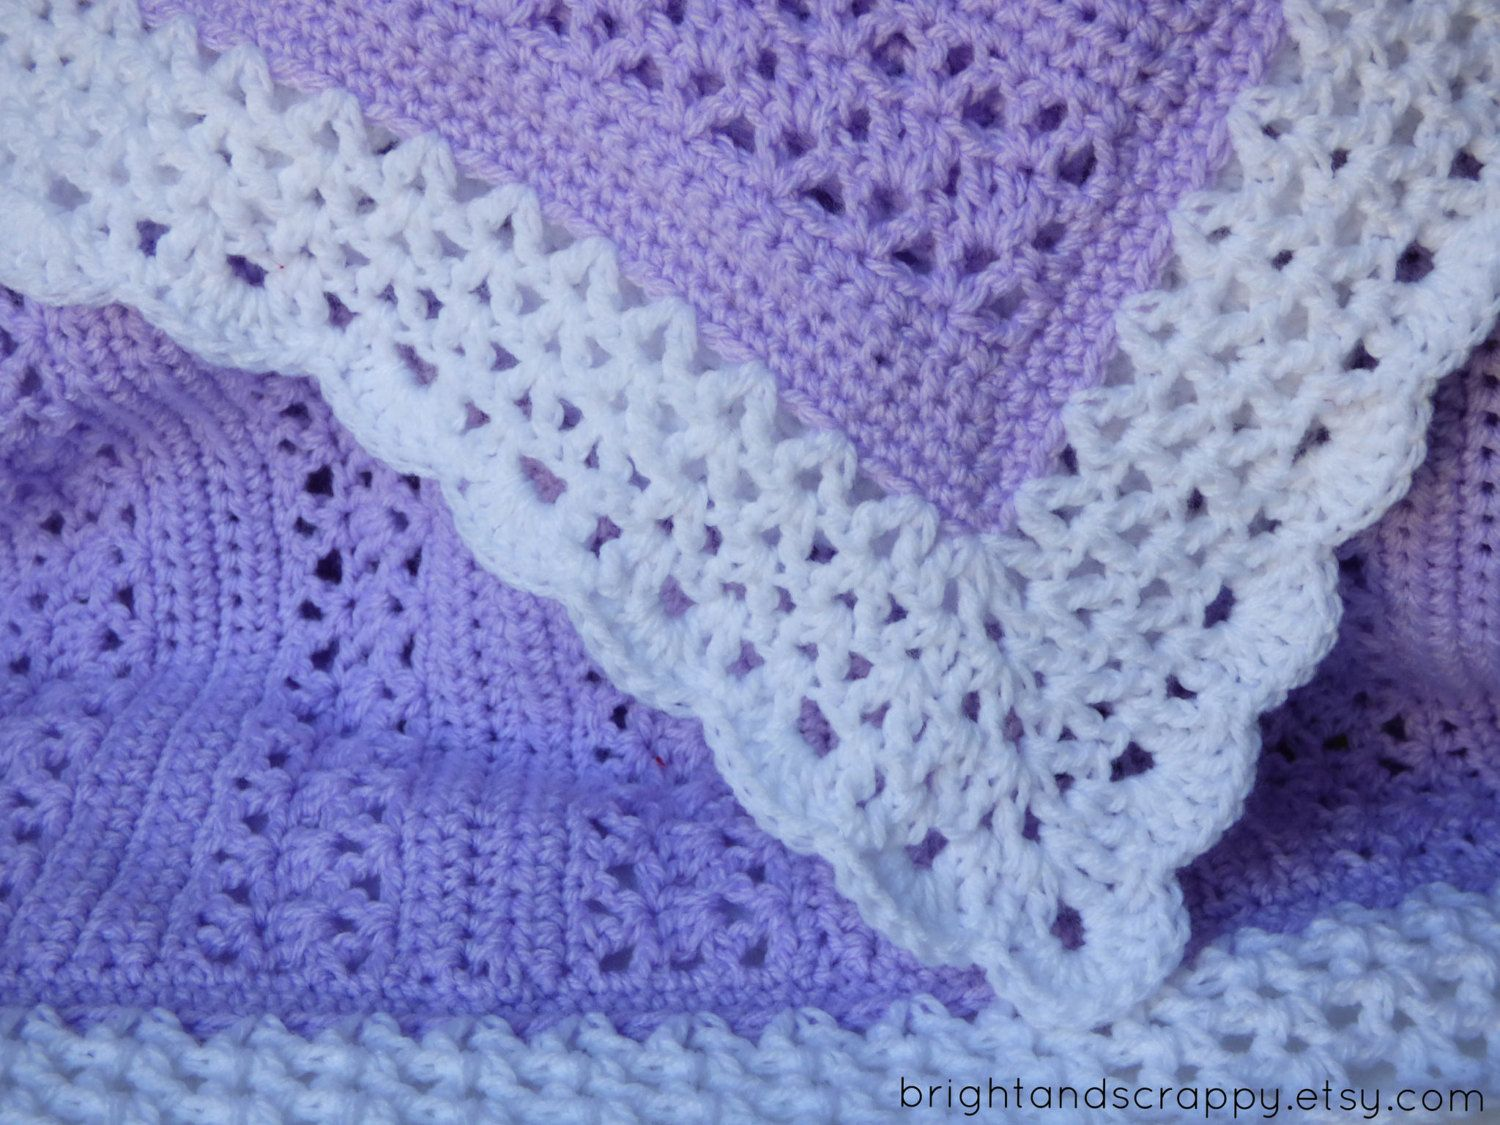 Crochet baby blanket items on etsy unique handmade crochet crochet baby blanket items on etsy unique handmade bankloansurffo Images